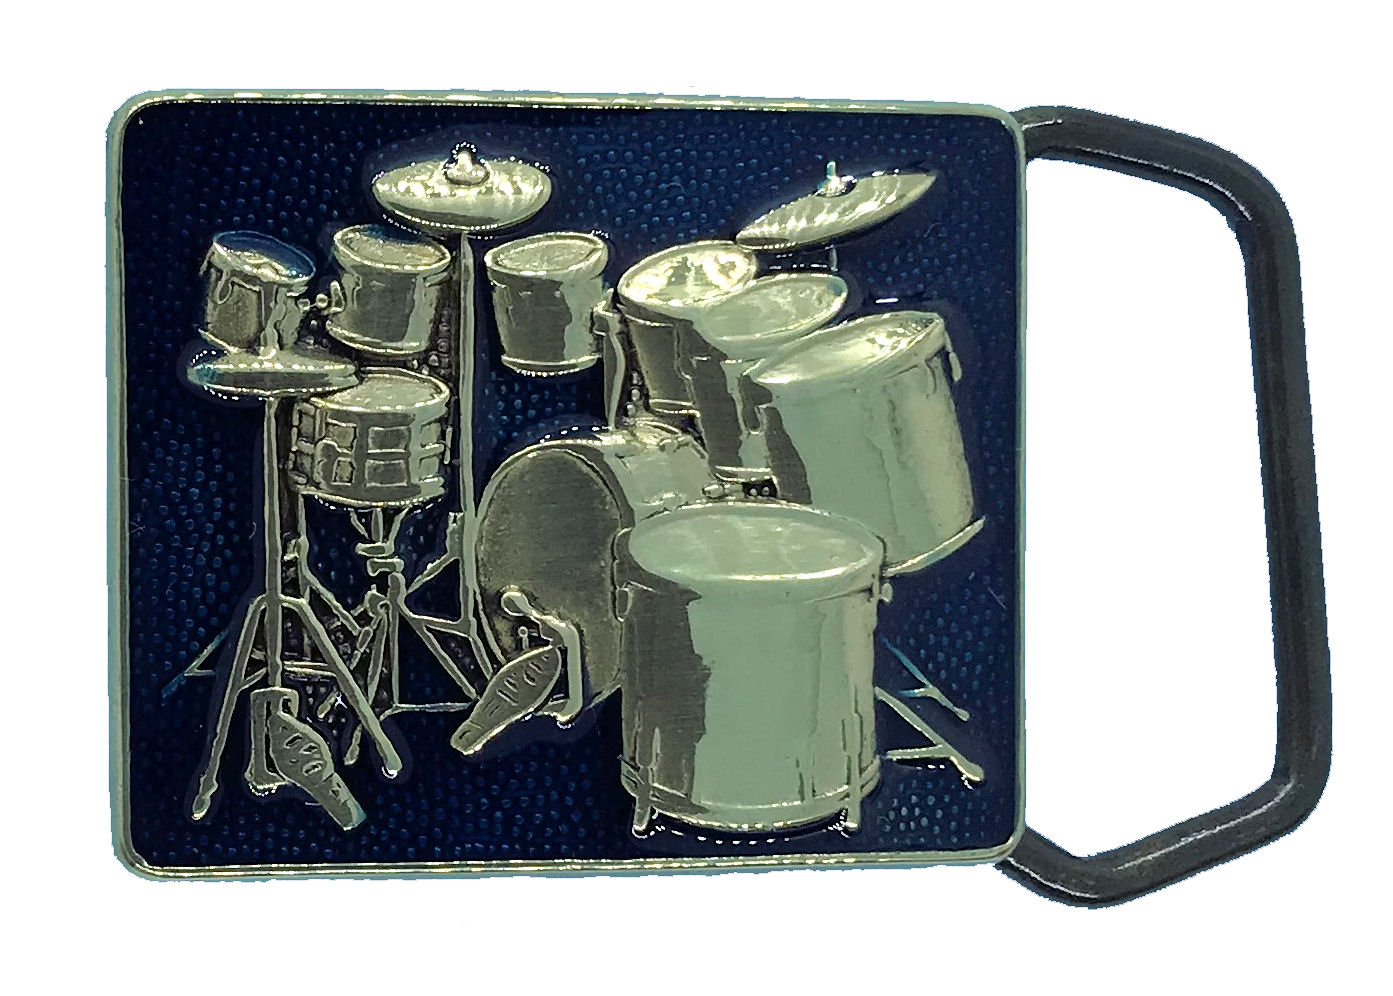 Drums (small drum) Brass Buckle